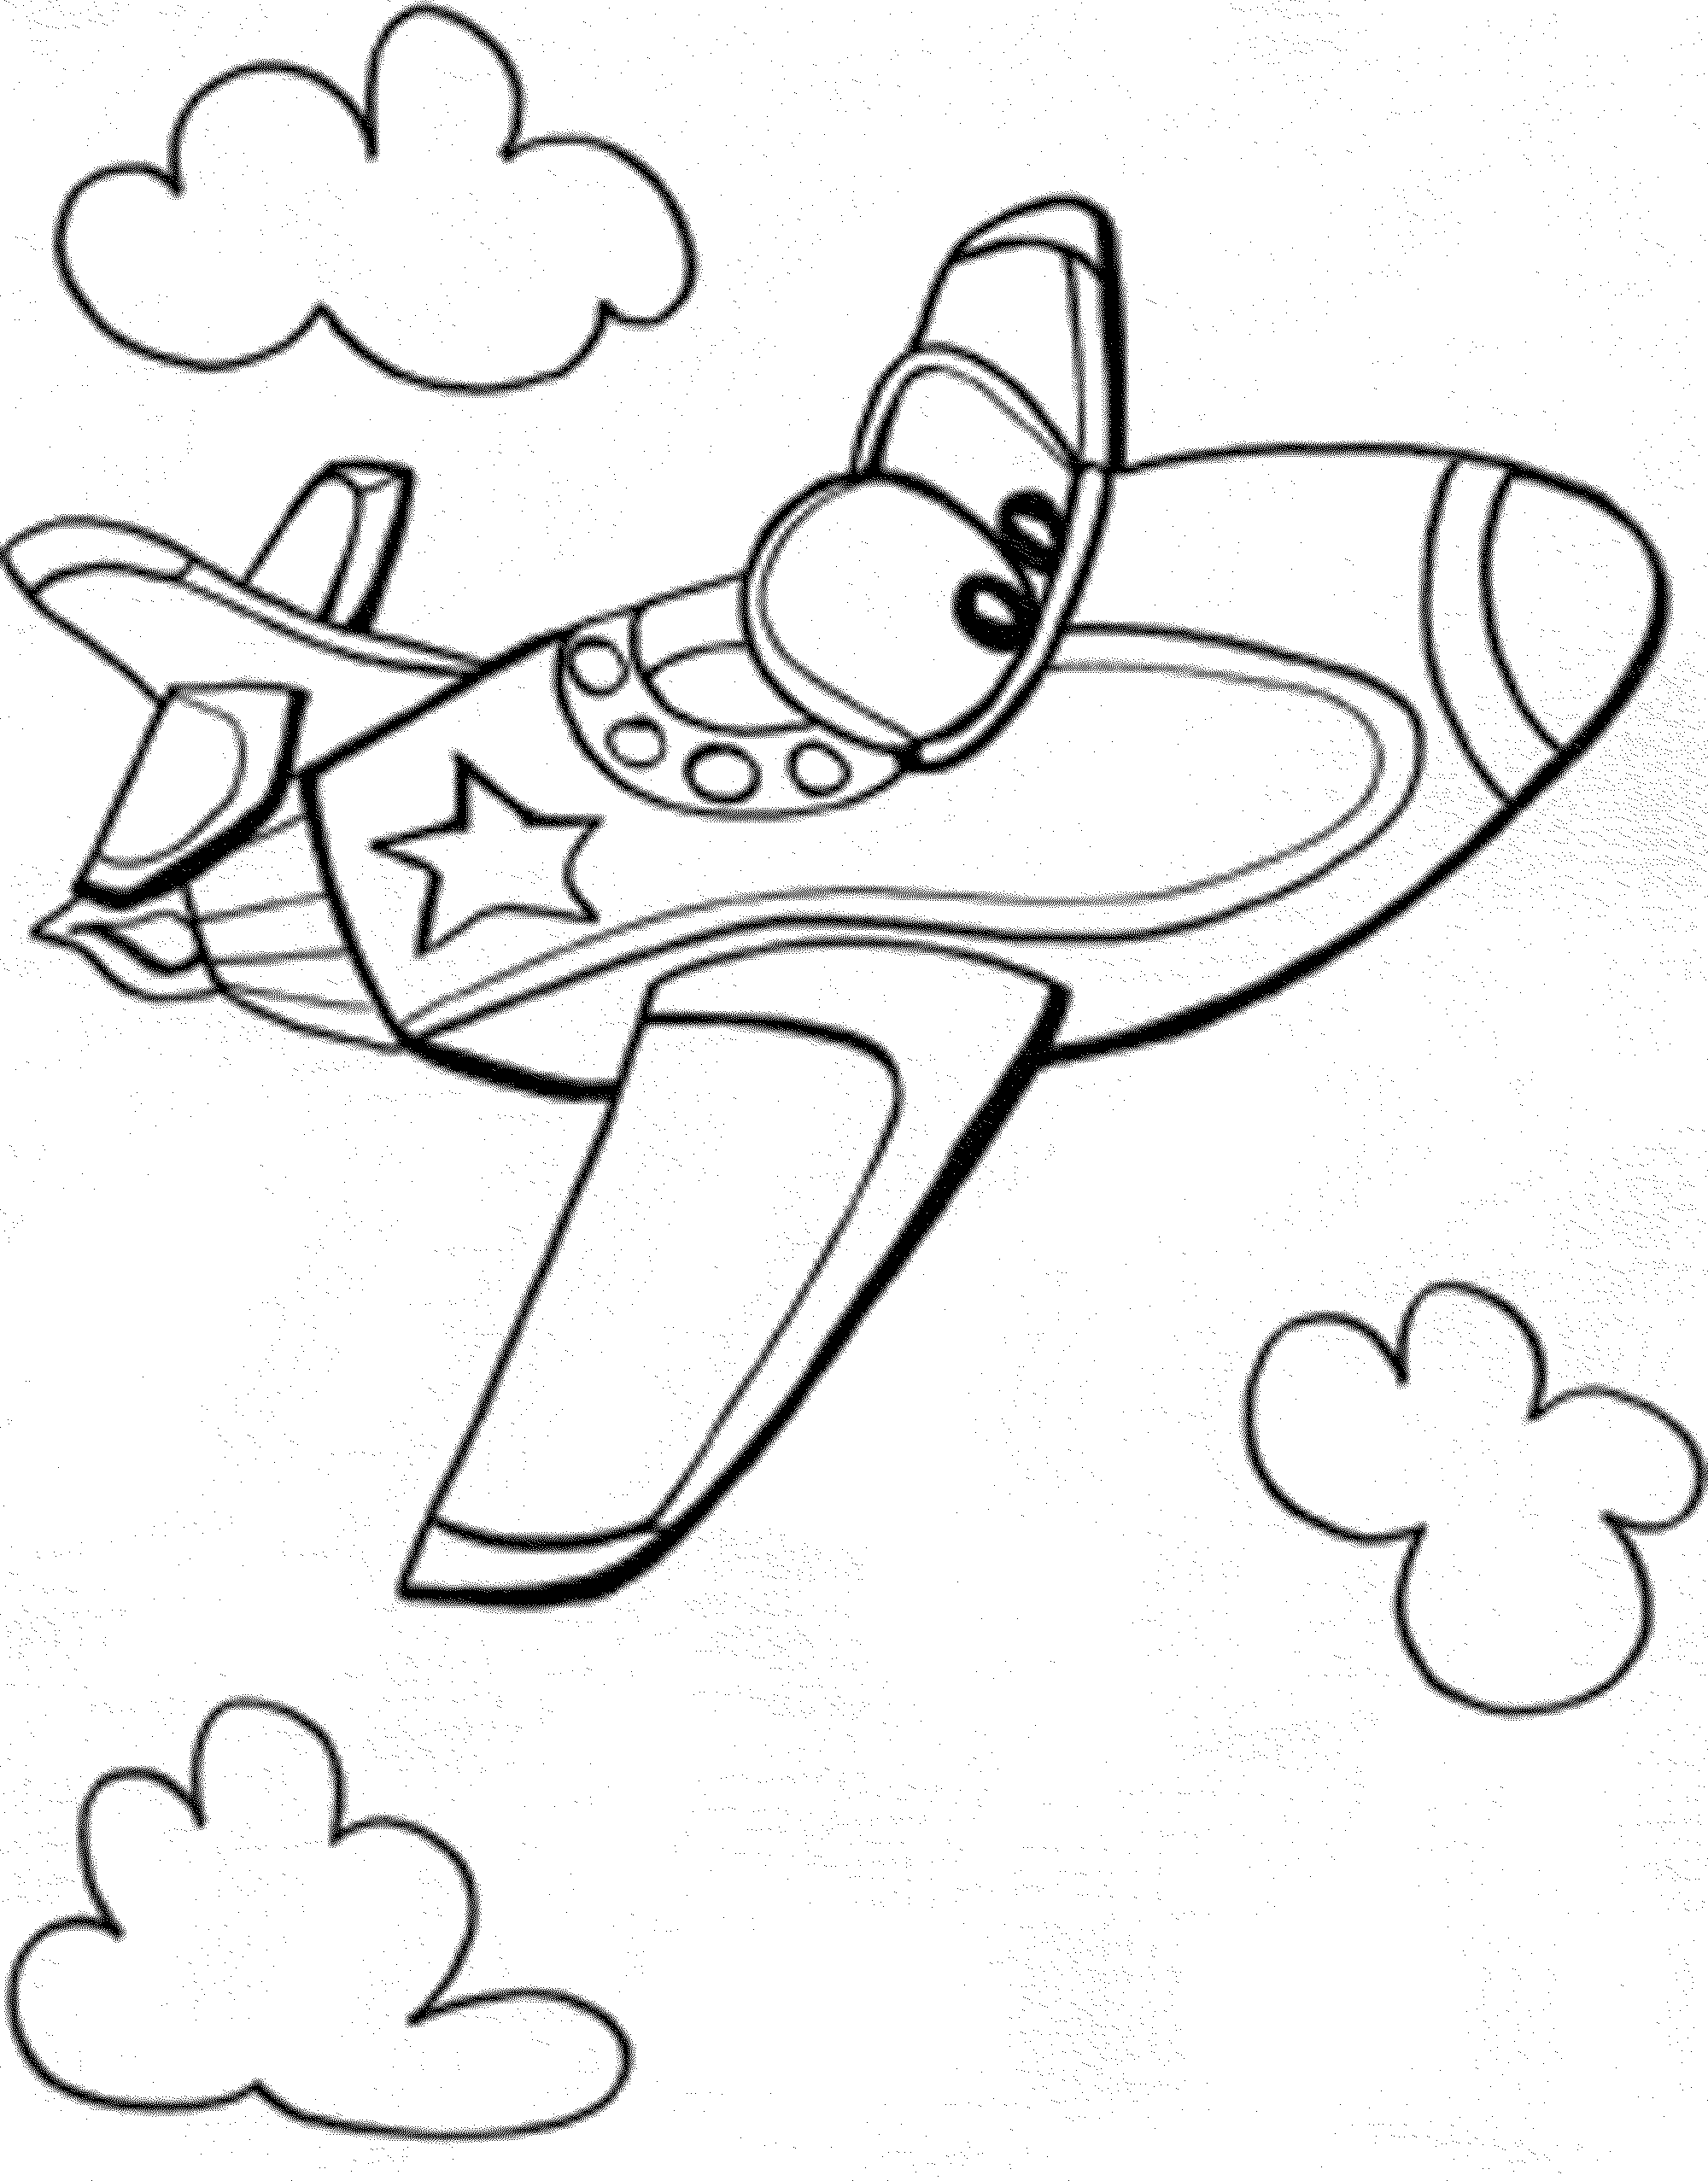 airplane coloring page free printable airplane coloring pages for kids page coloring airplane